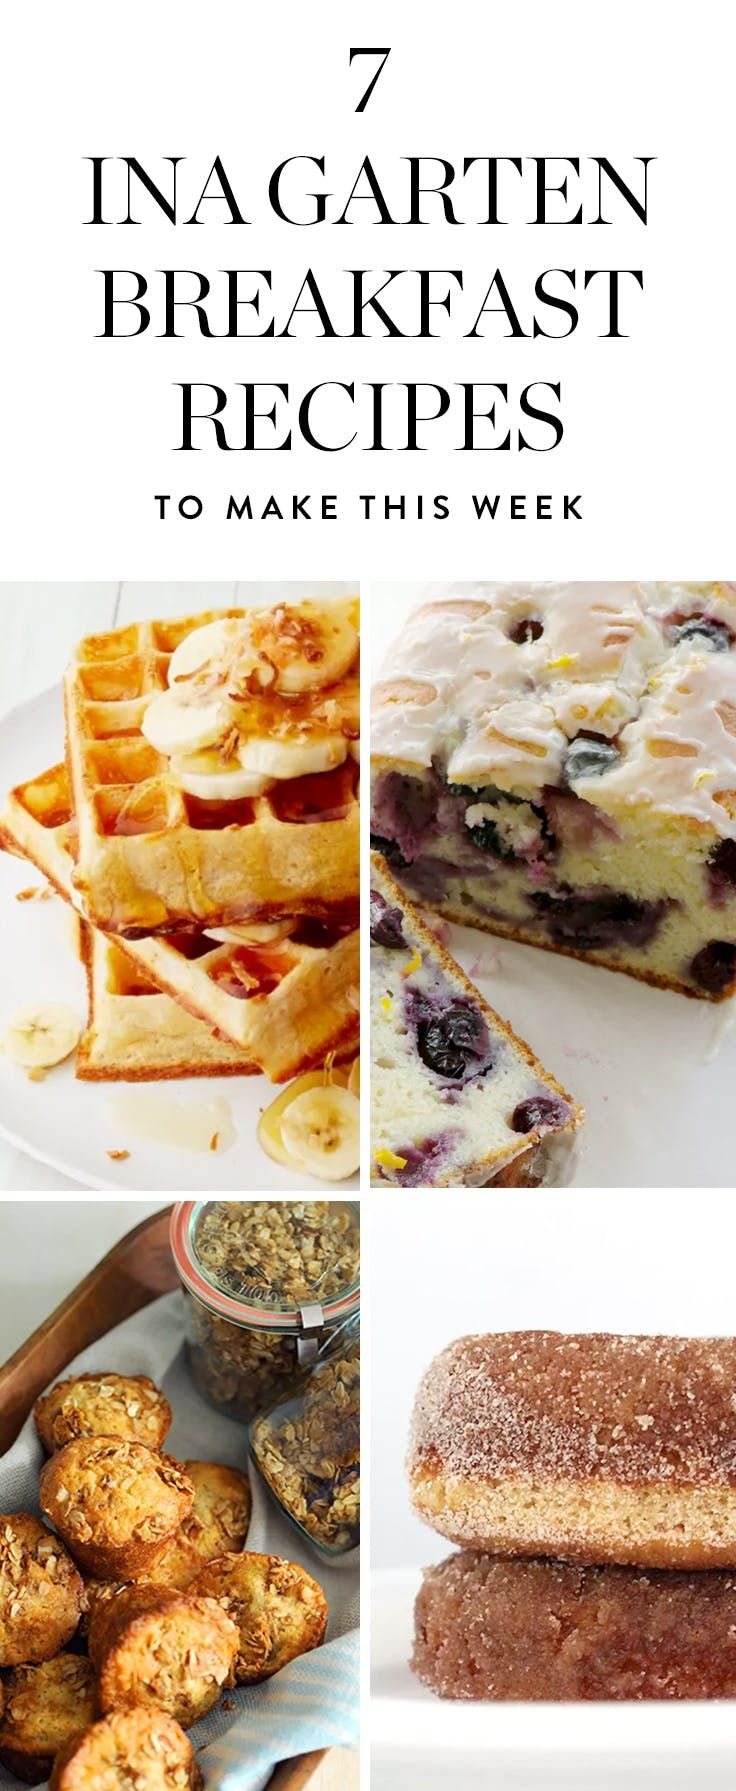 69 best ah good to know images on pinterest households for Ina garten breakfast recipes